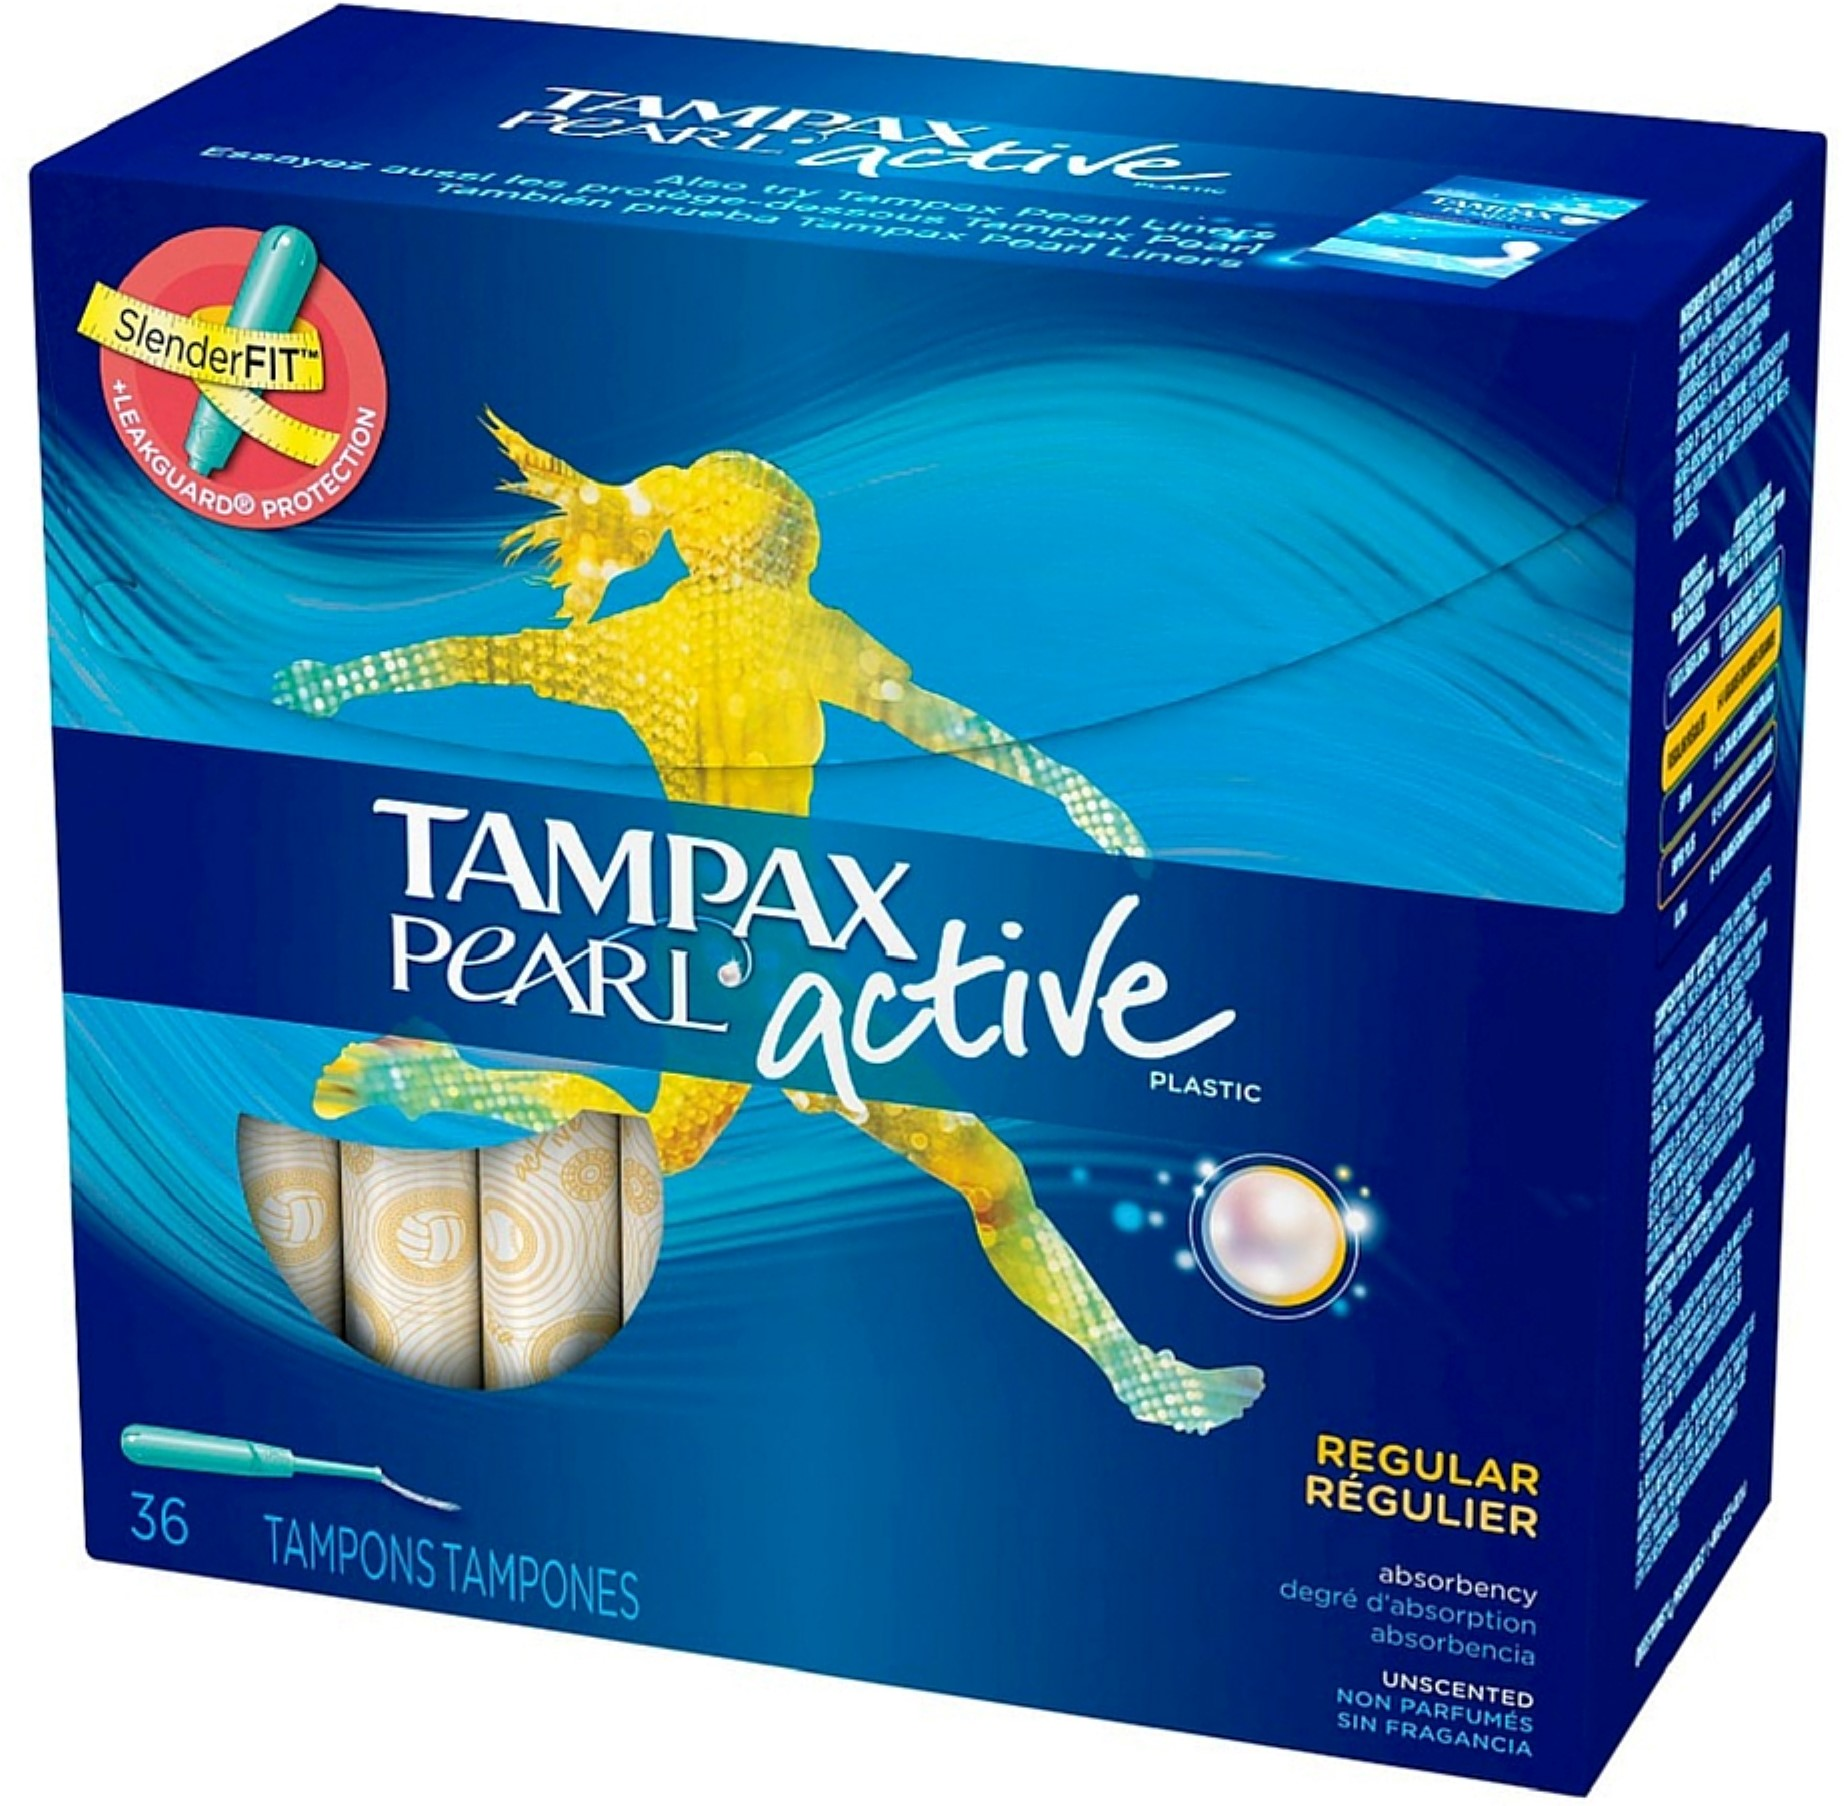 Tampax Pearl Active Plastic Unscented Tampons, Regular Absorbency 36 ea (Pack of 2)